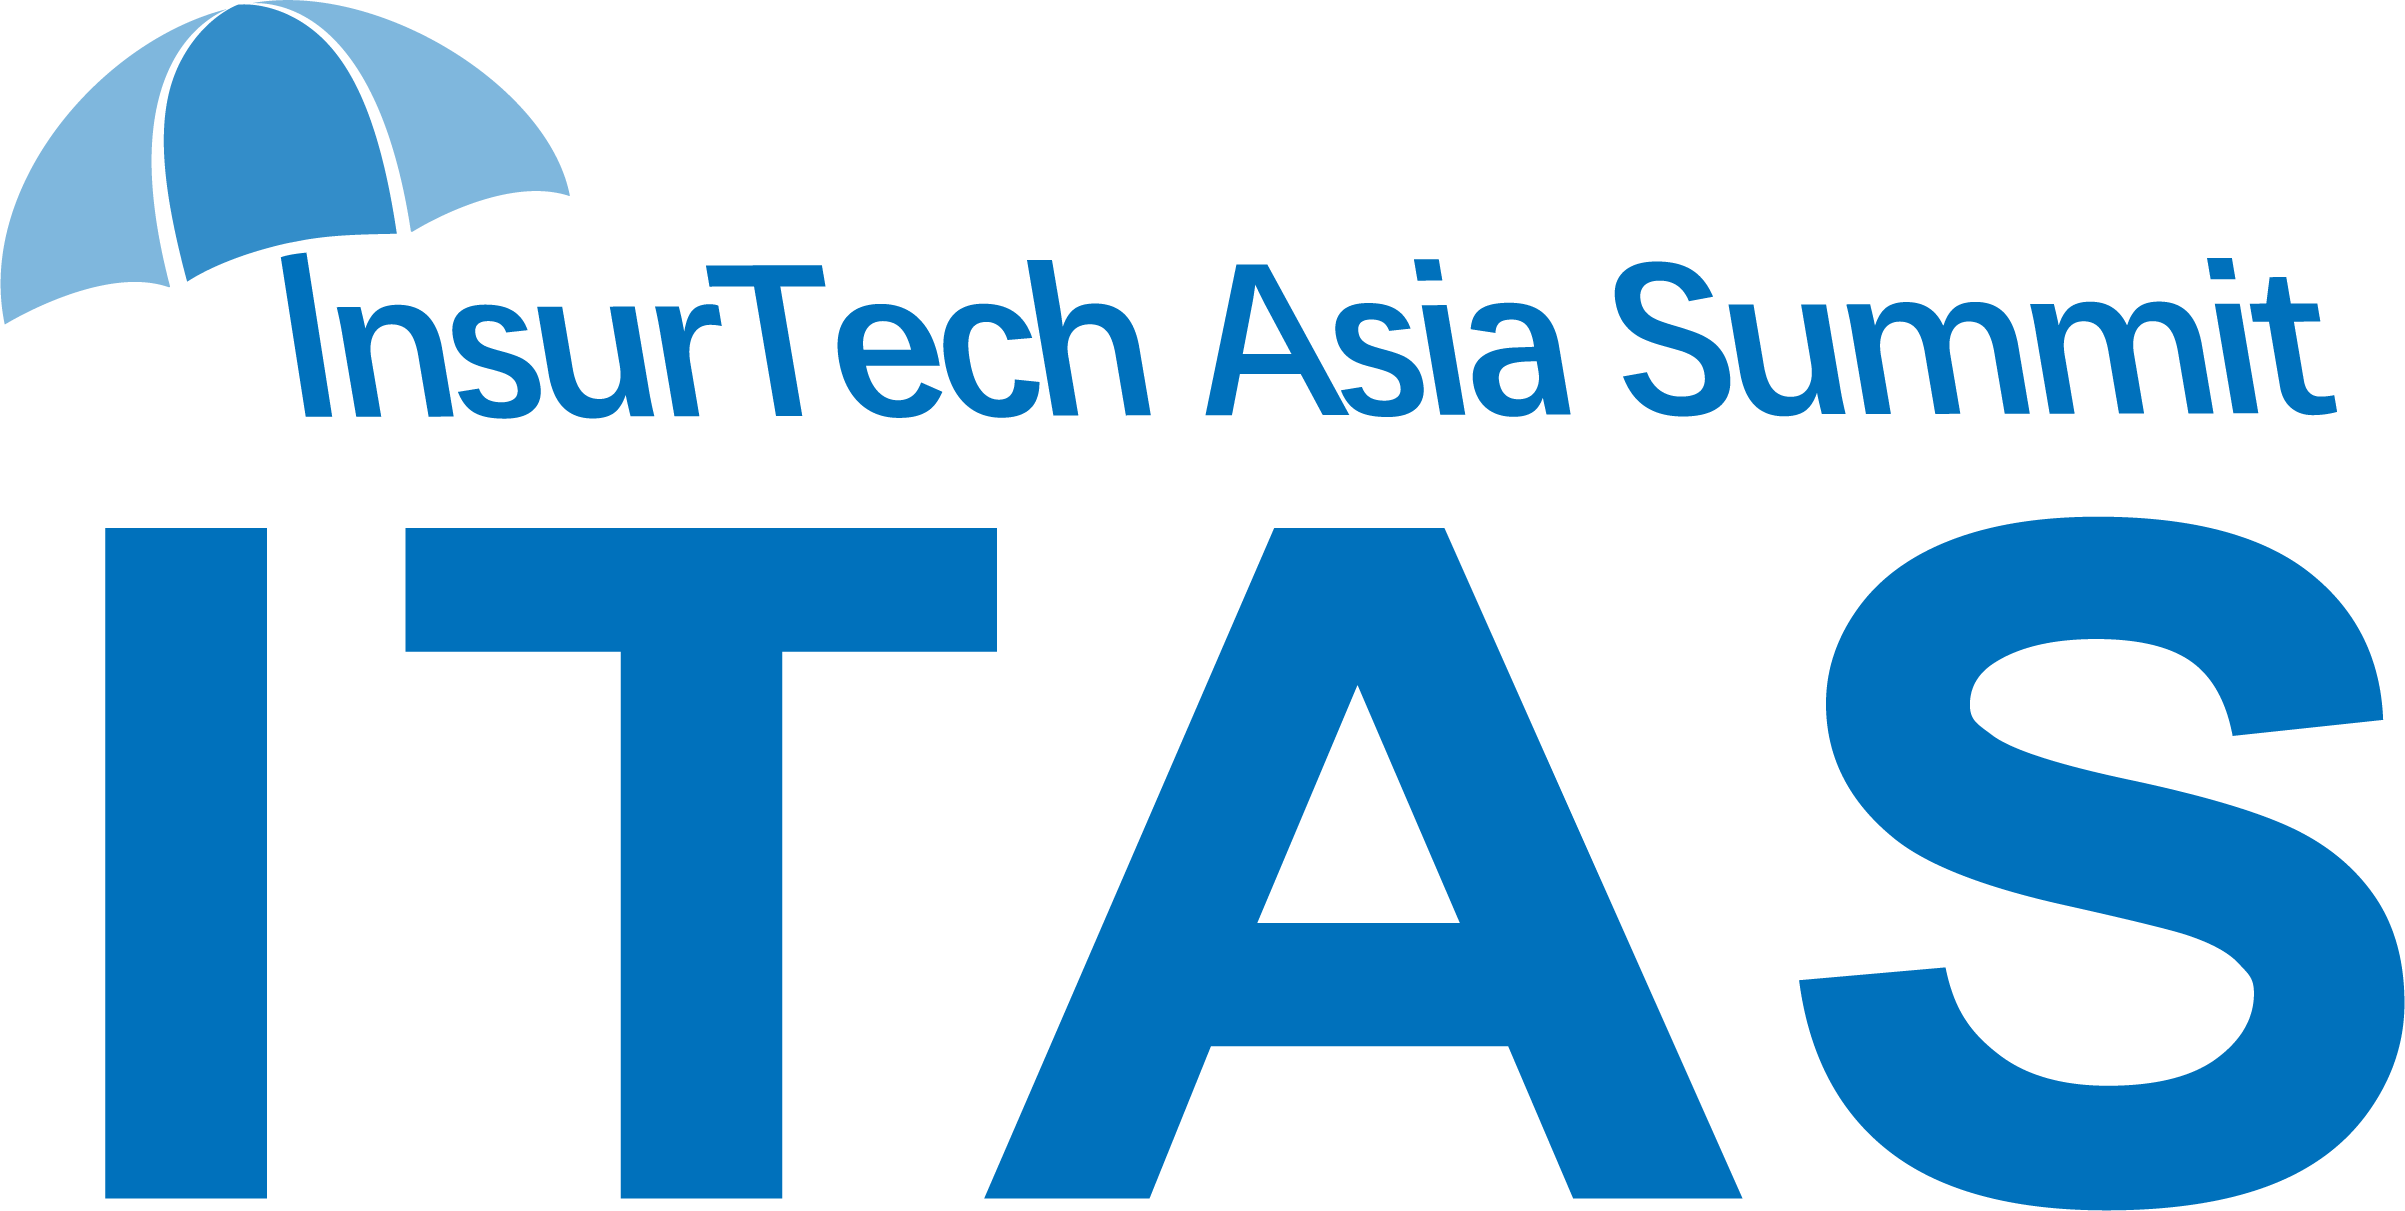 InsurTech Asia Summit 2019 organized by Duxes Information and Technology PLC.